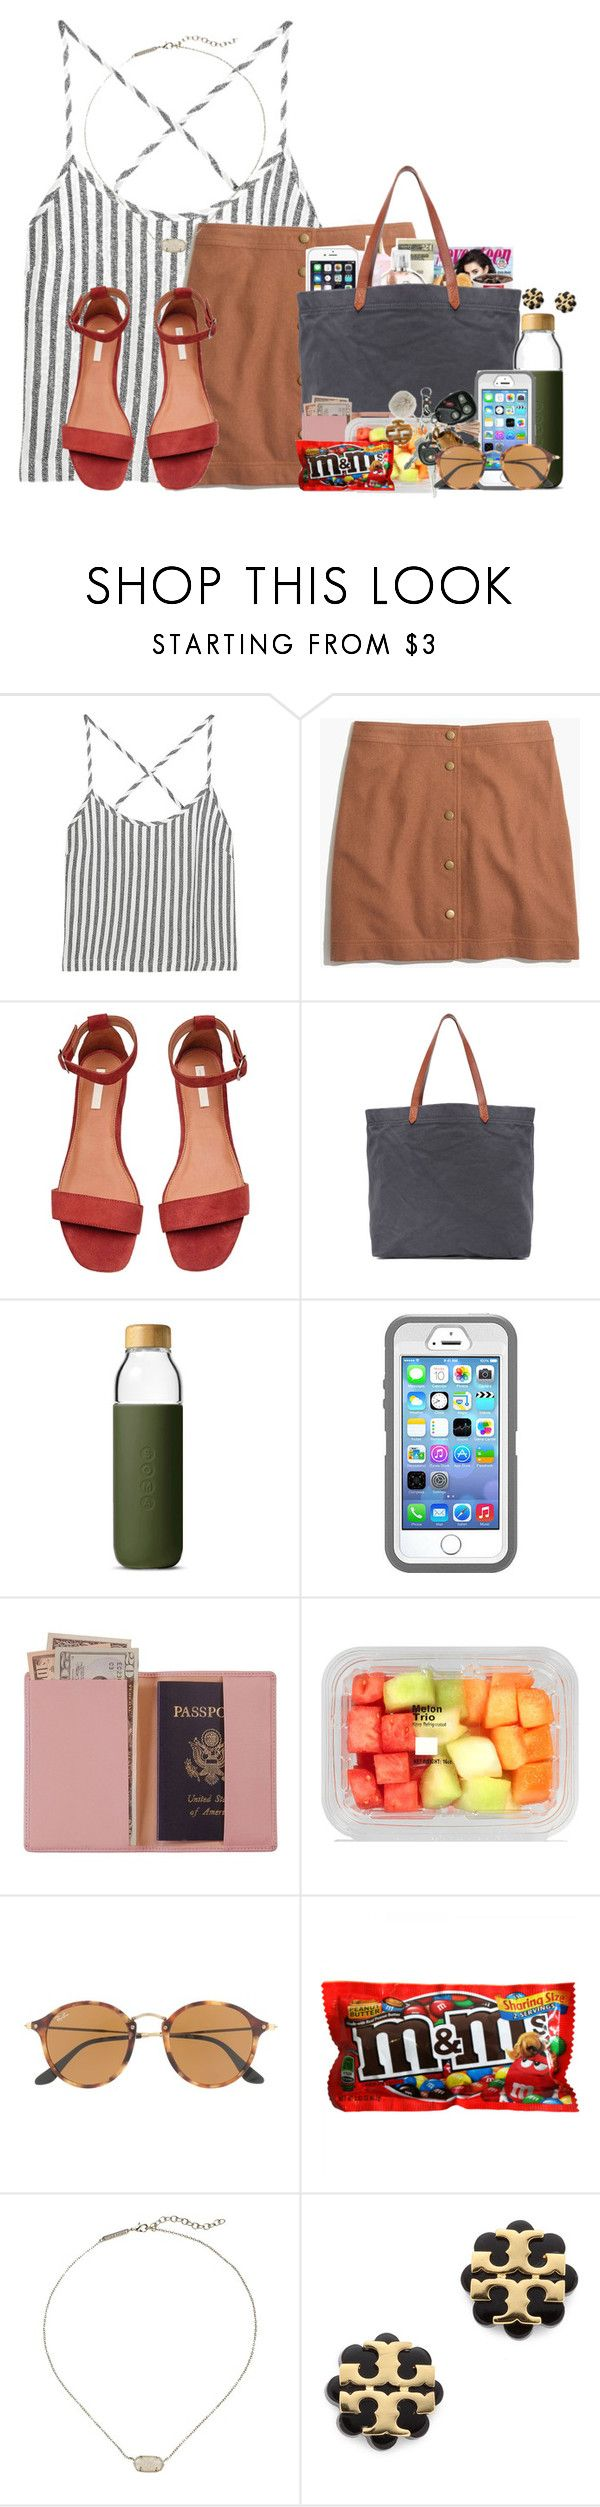 """""""What a great weekend"""" by flroasburn ❤ liked on Polyvore featuring Kain, Madewell, Soma, Royce Leather, Ray-Ban, Kendra Scott and Tory Burch"""